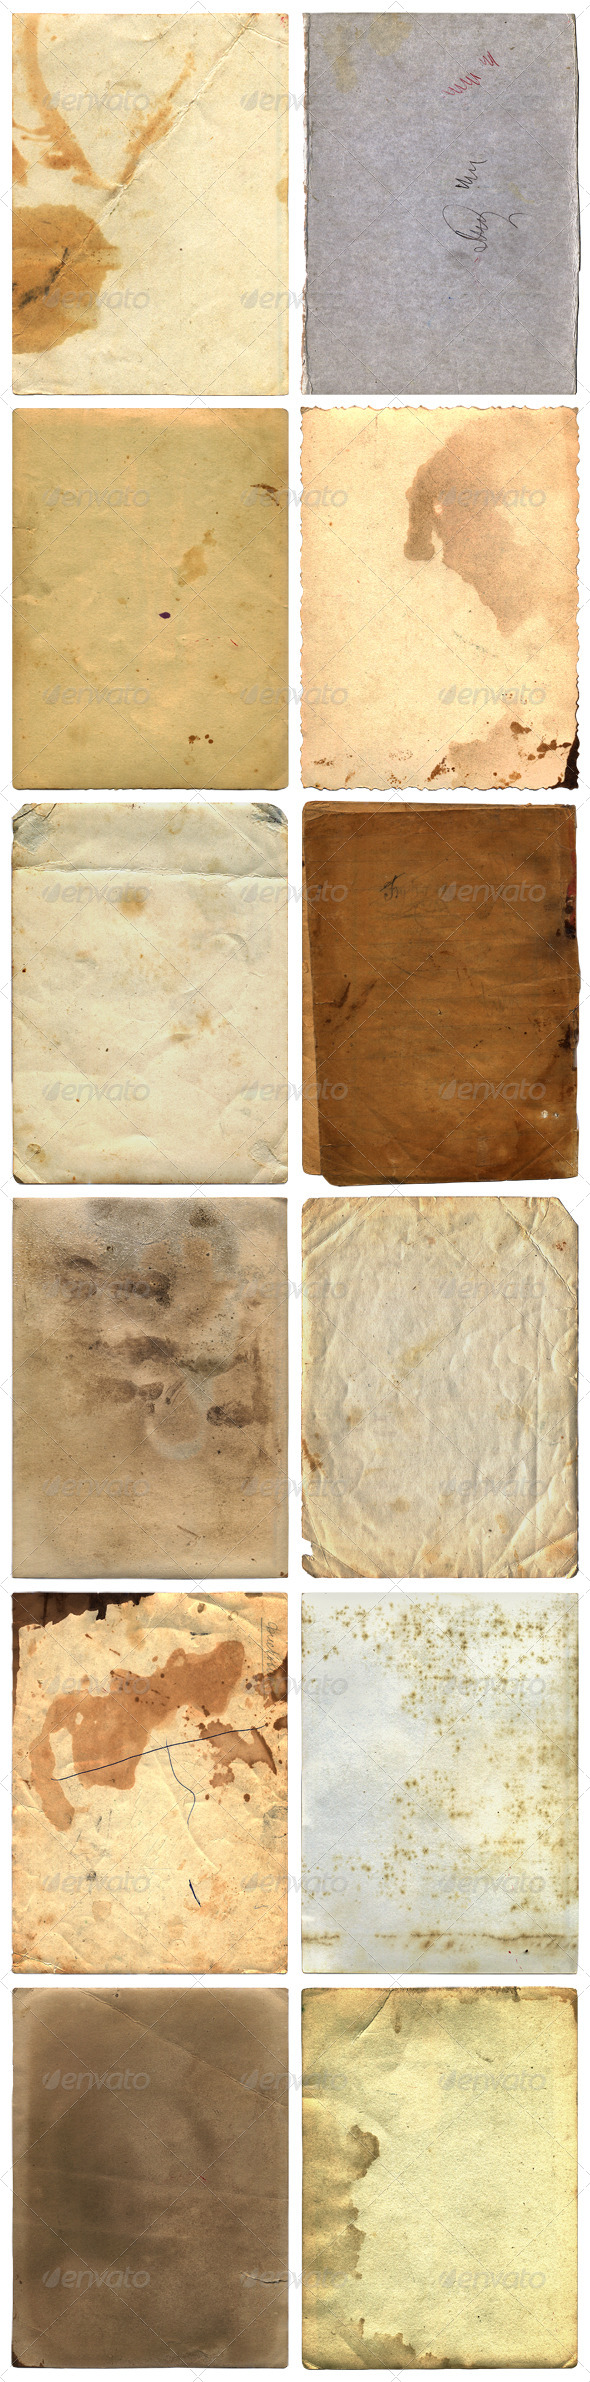 Grunge Paper Backgrounds And Textures